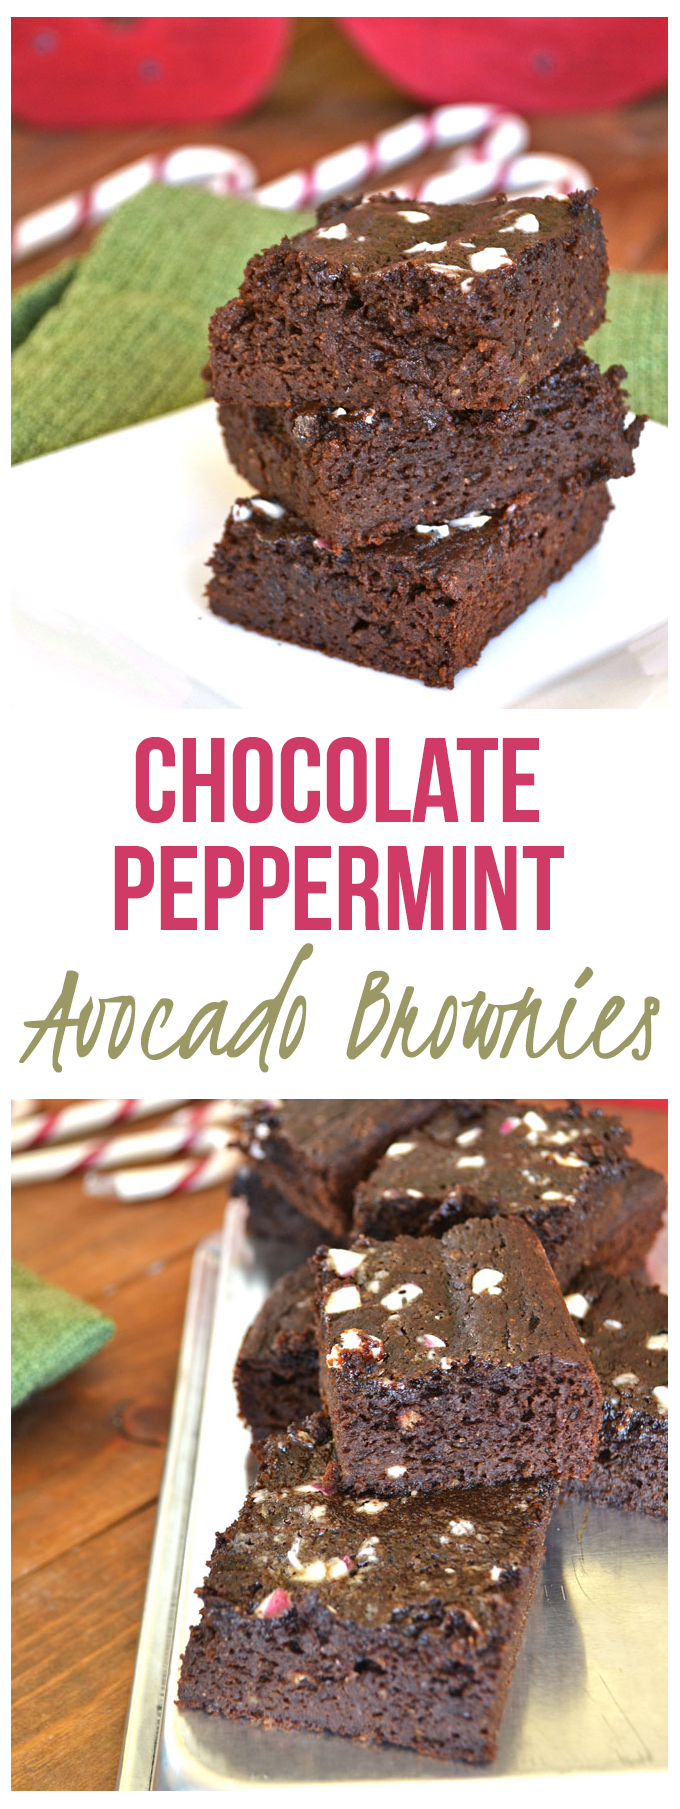 Chocolate Peppermint Avocado Brownies - whole wheat flour, avocado & cacao powder make these superfood brownies! Clean Ingredients and still the perfect mix of fudgey and cakey!